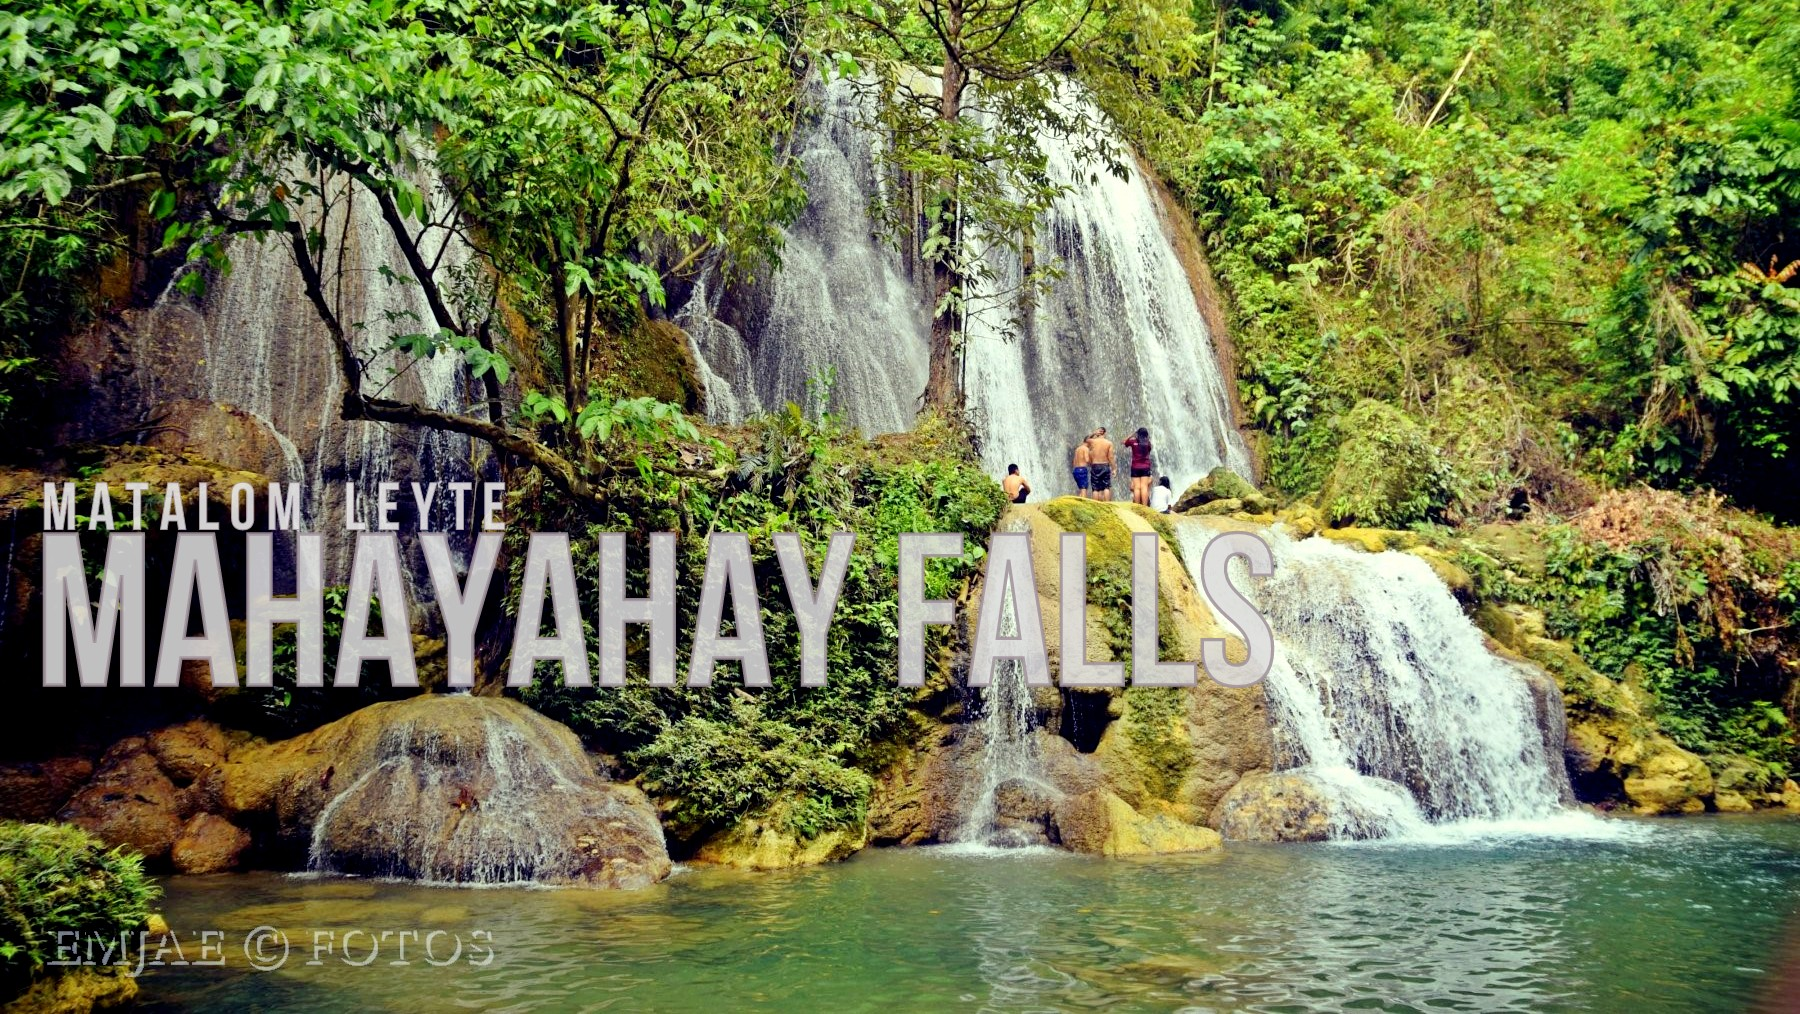 Mahayahay Falls: A Hidden Beauty in Matalom Leyte